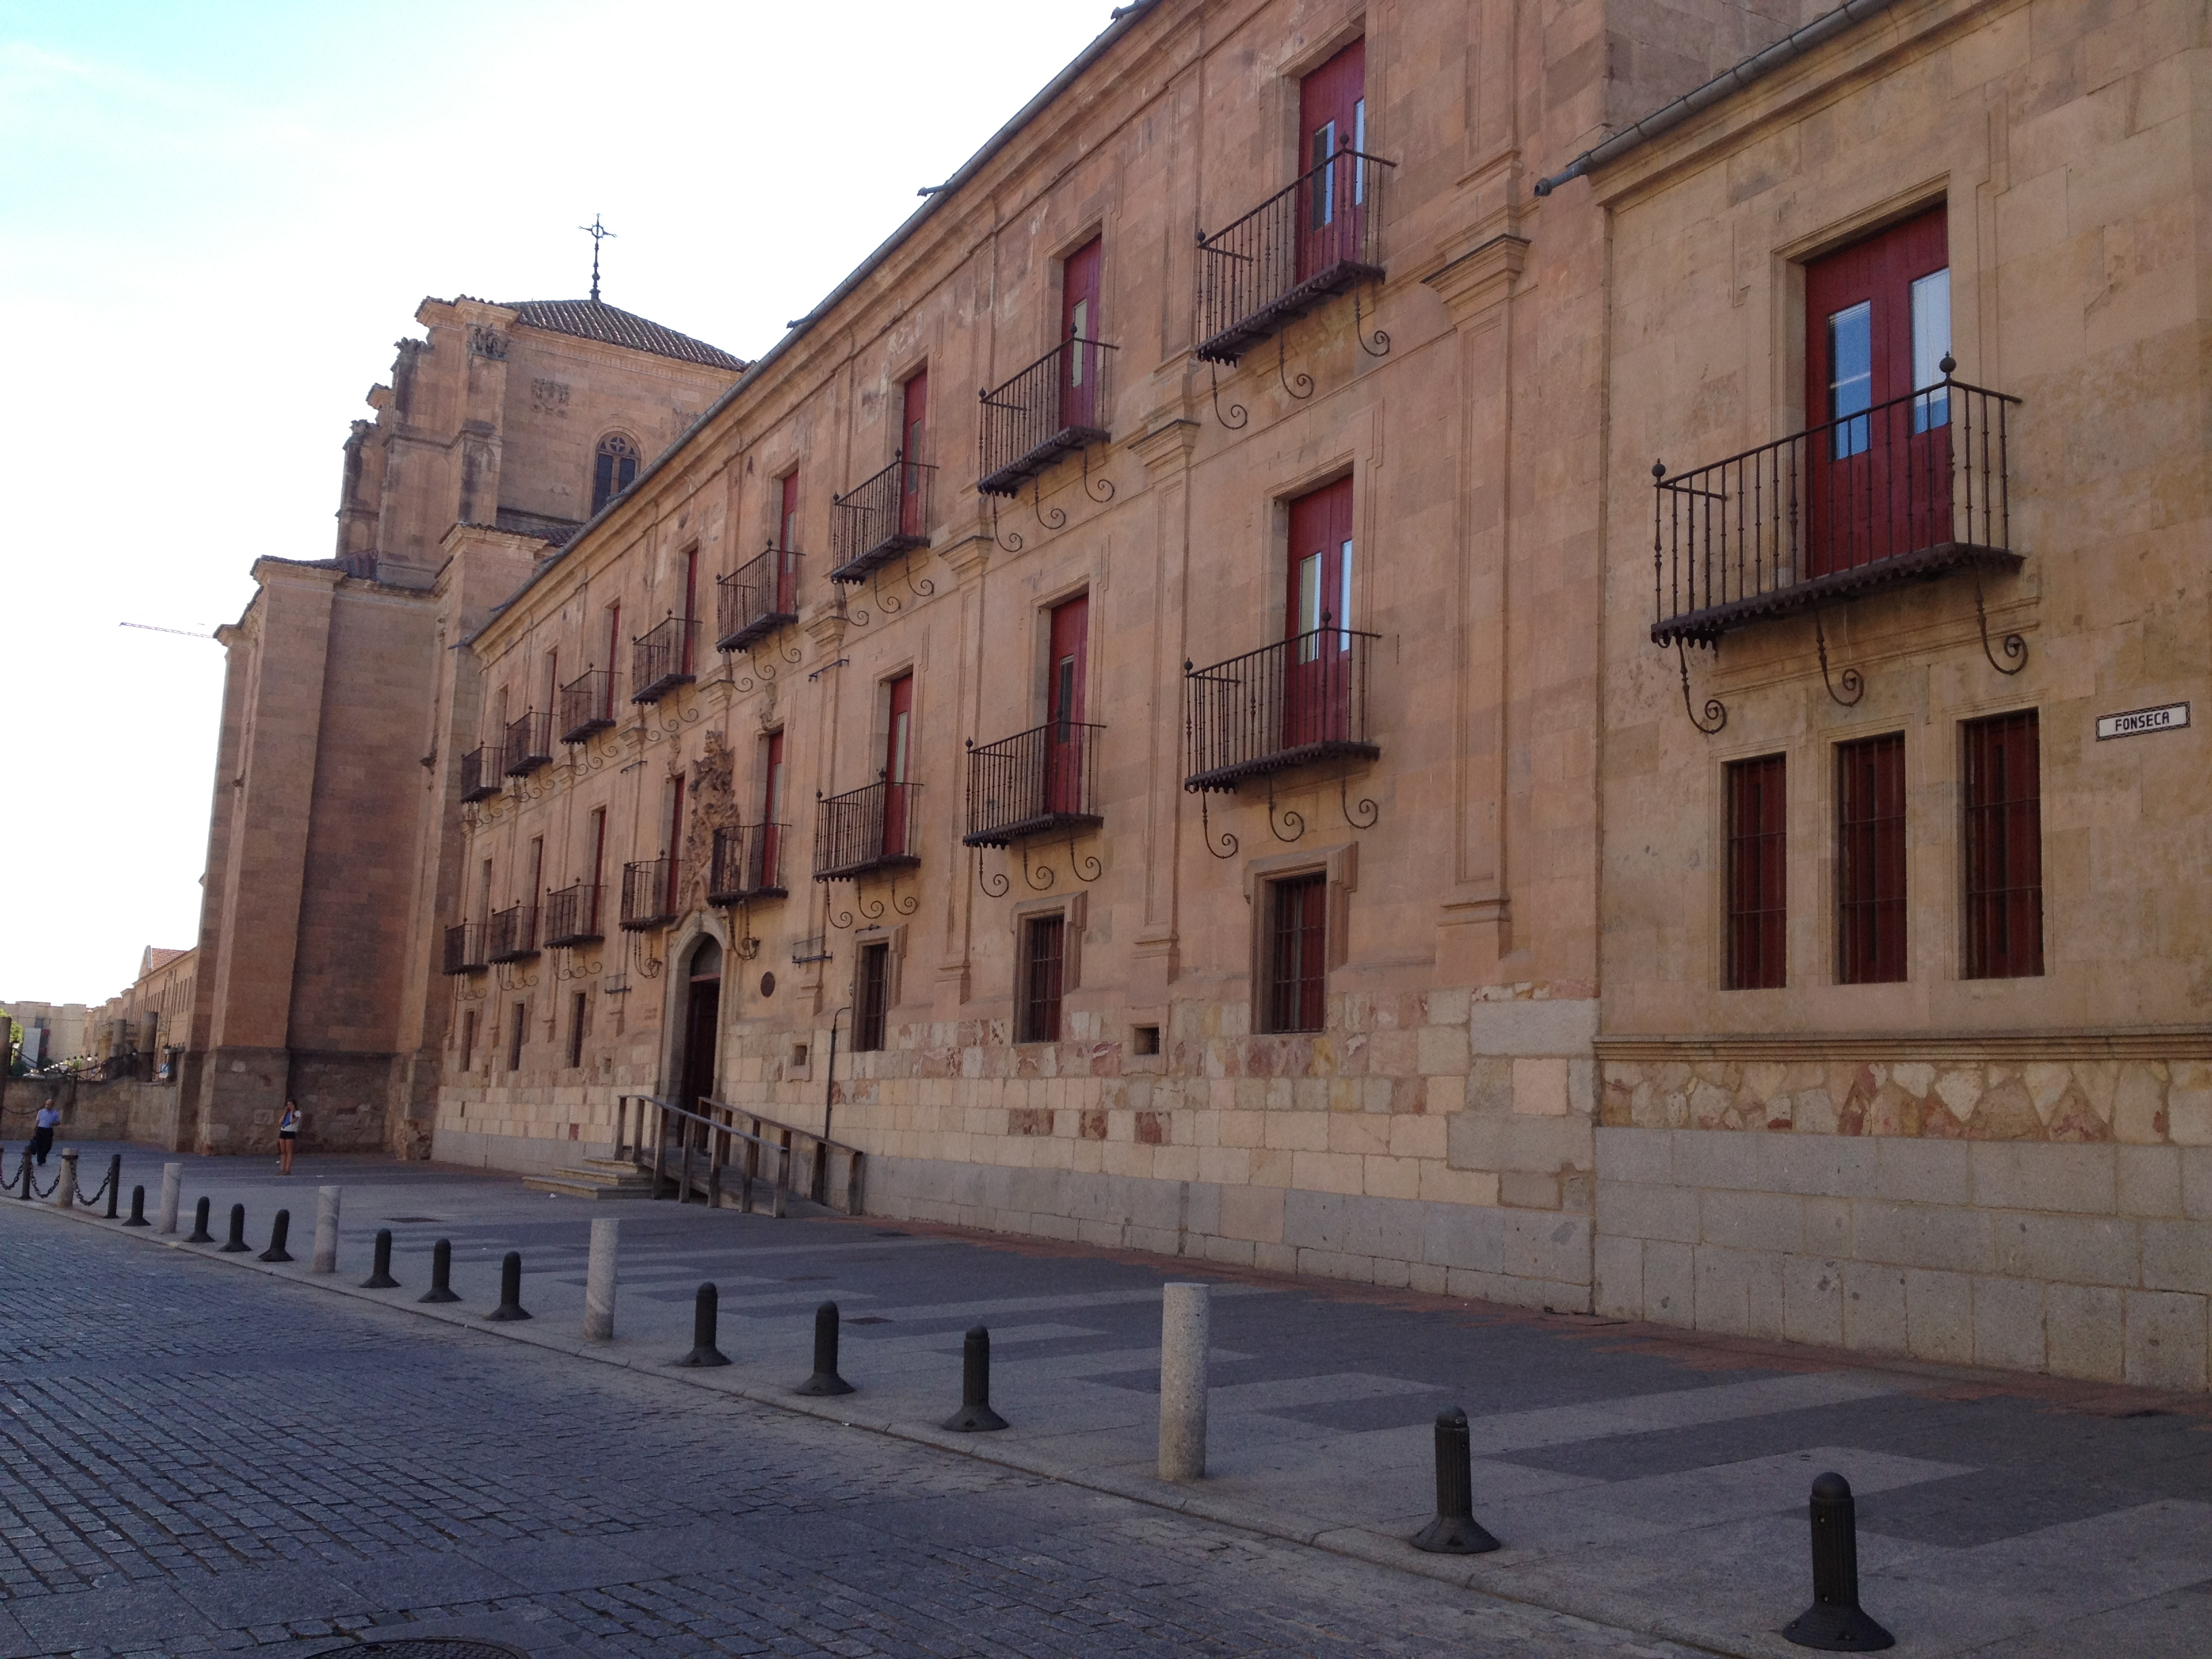 File:Colegio de Fonseca, Universidad de Salamanca.JPG ... - photo#37